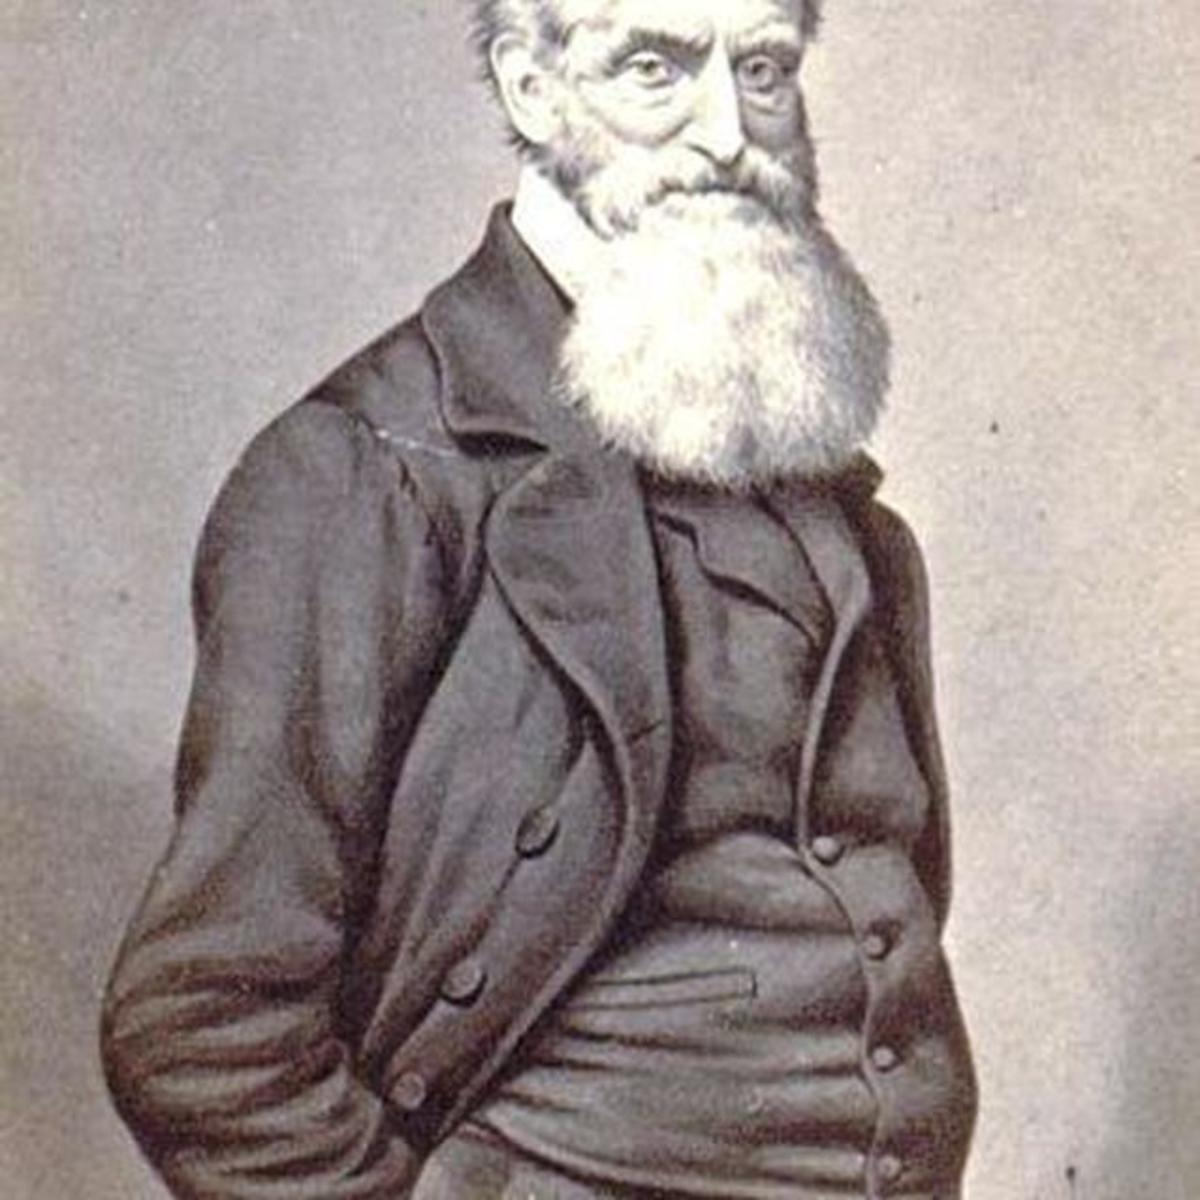 John Brown: Saint, Guerrilla Fighter, or Domestic Terrorist?